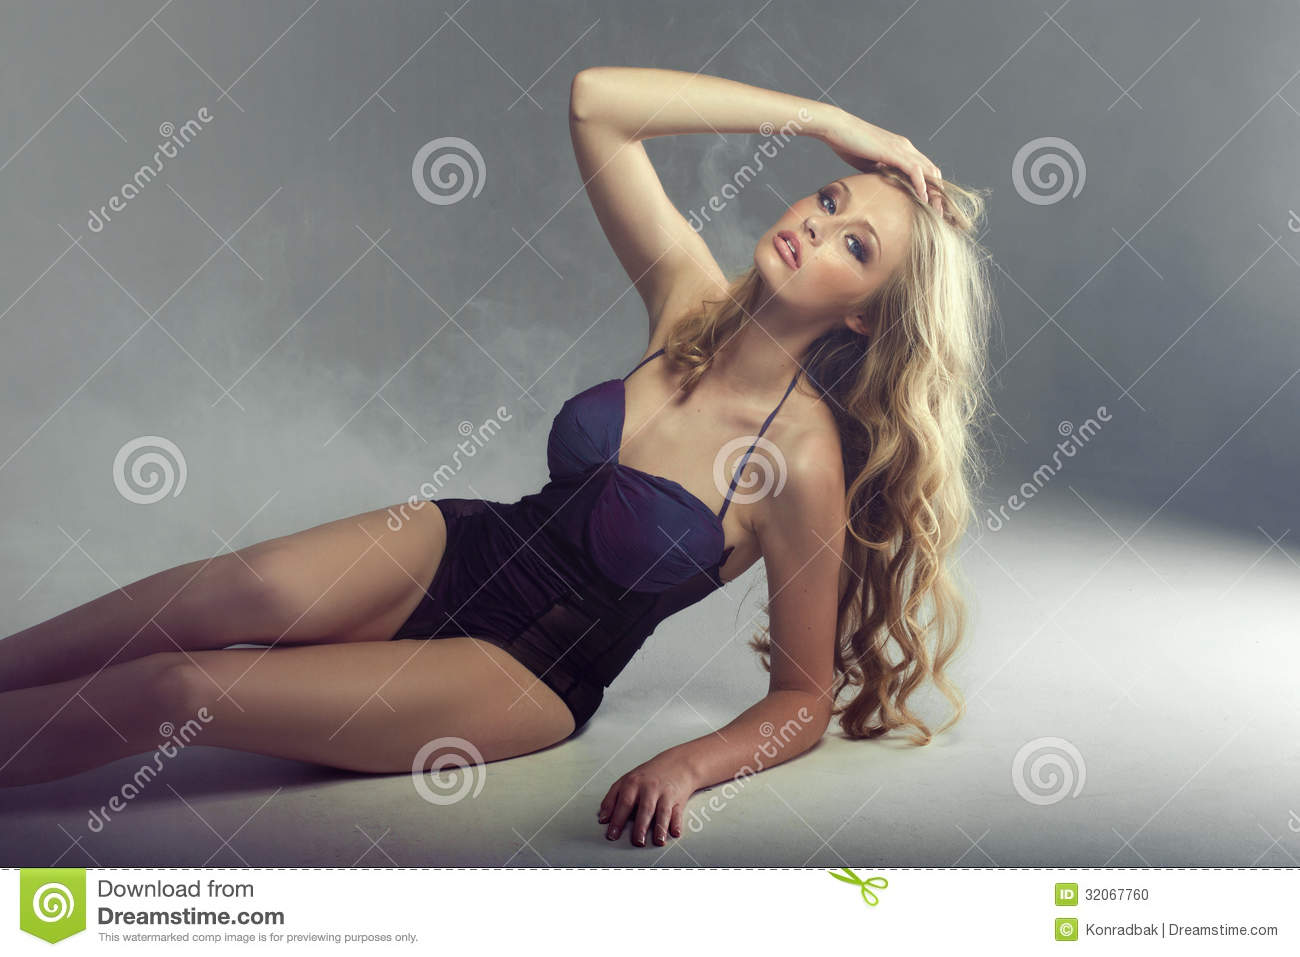 Tired blonde lady in great pose